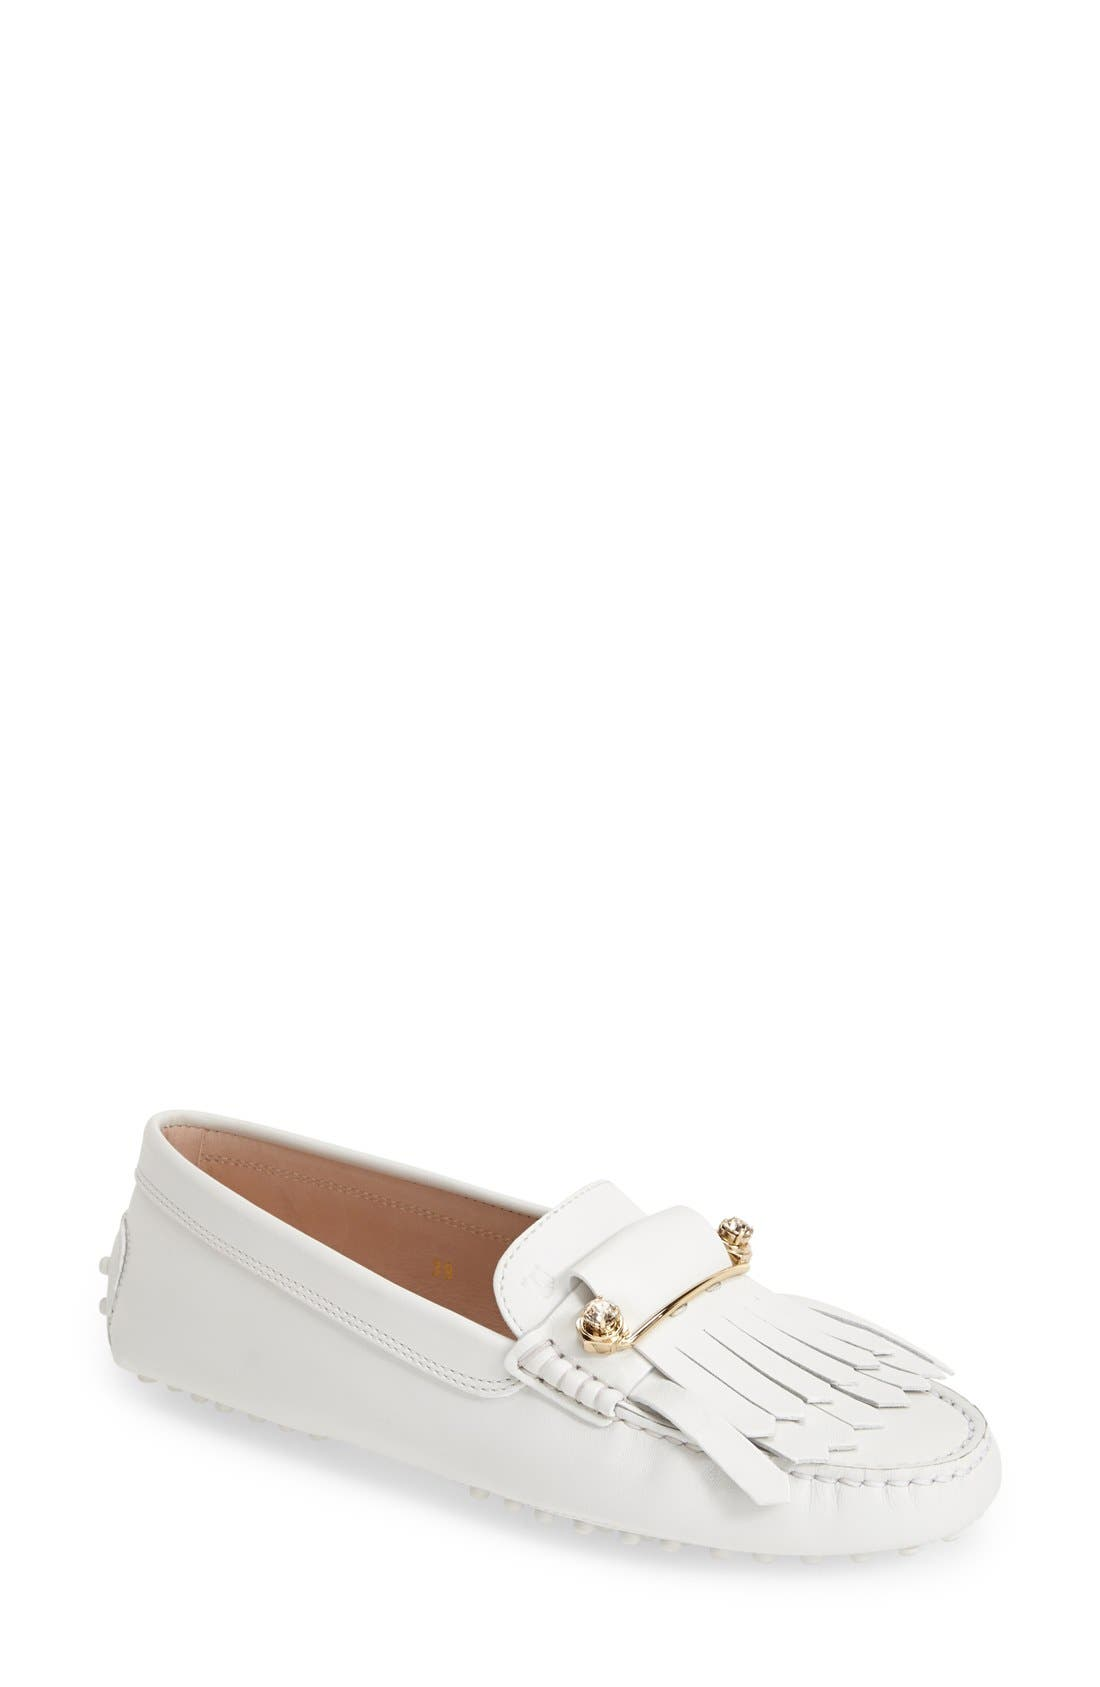 TOD'S 'Gommini' Crystal Embellished Fringed Leather Driving Moccasin, Main, color, 100